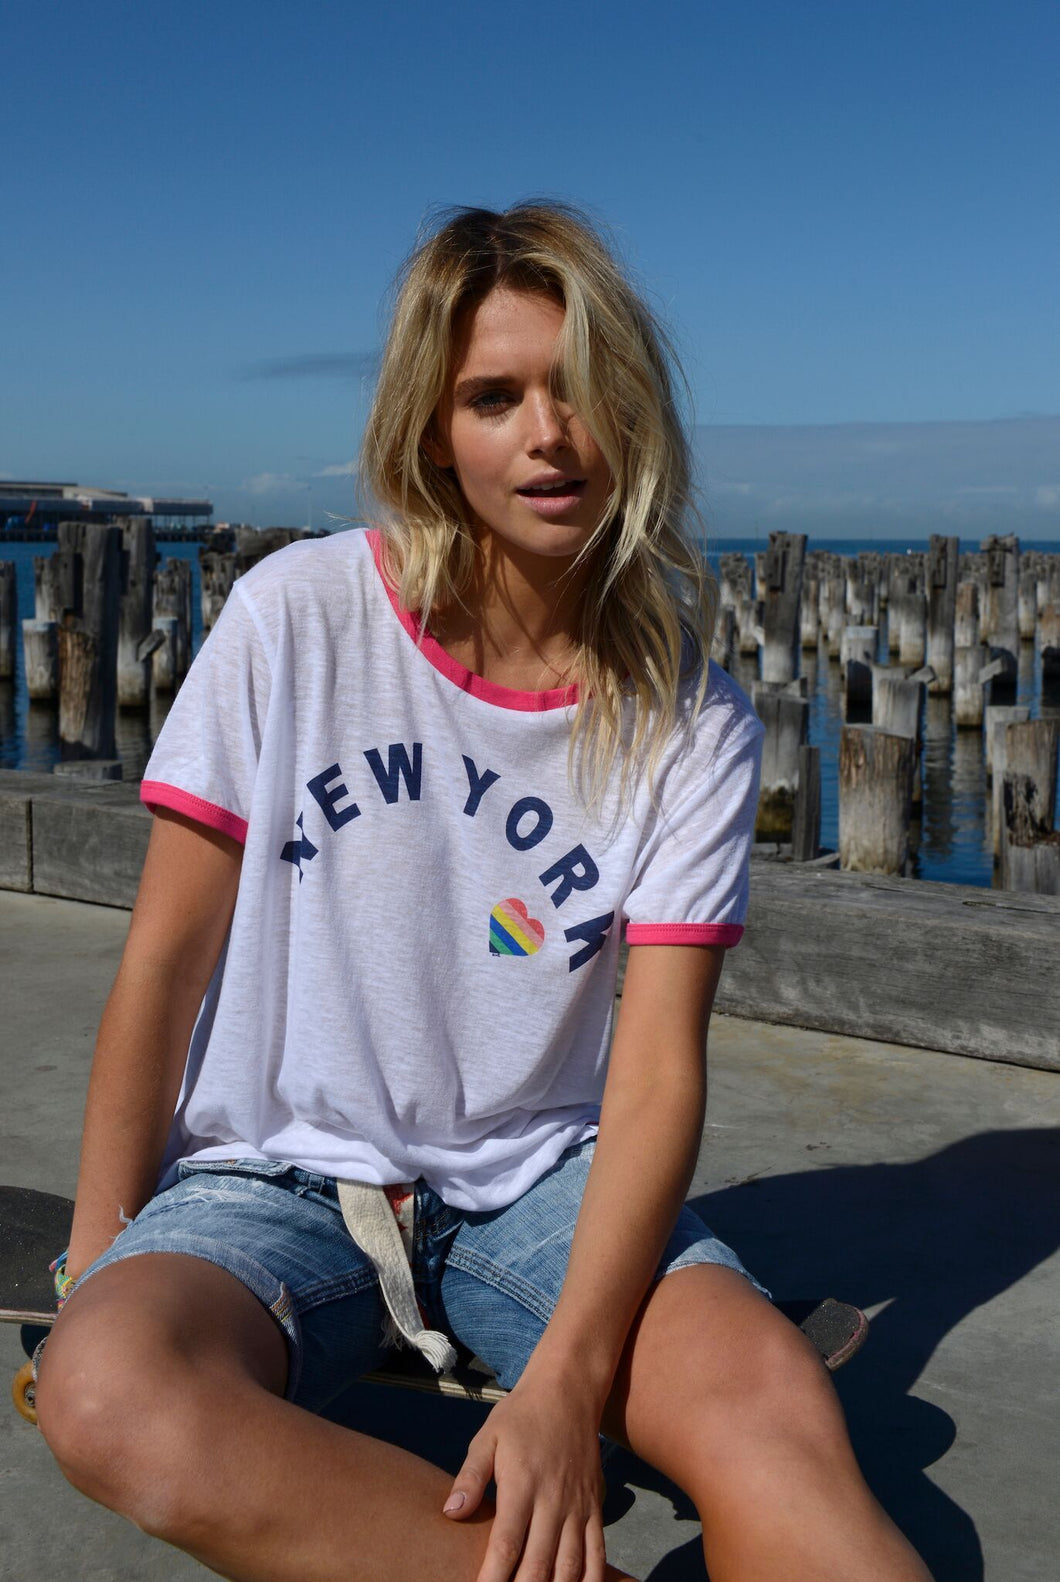 Cat Hammill New York Ringer Tee Hammill and Co Basic State